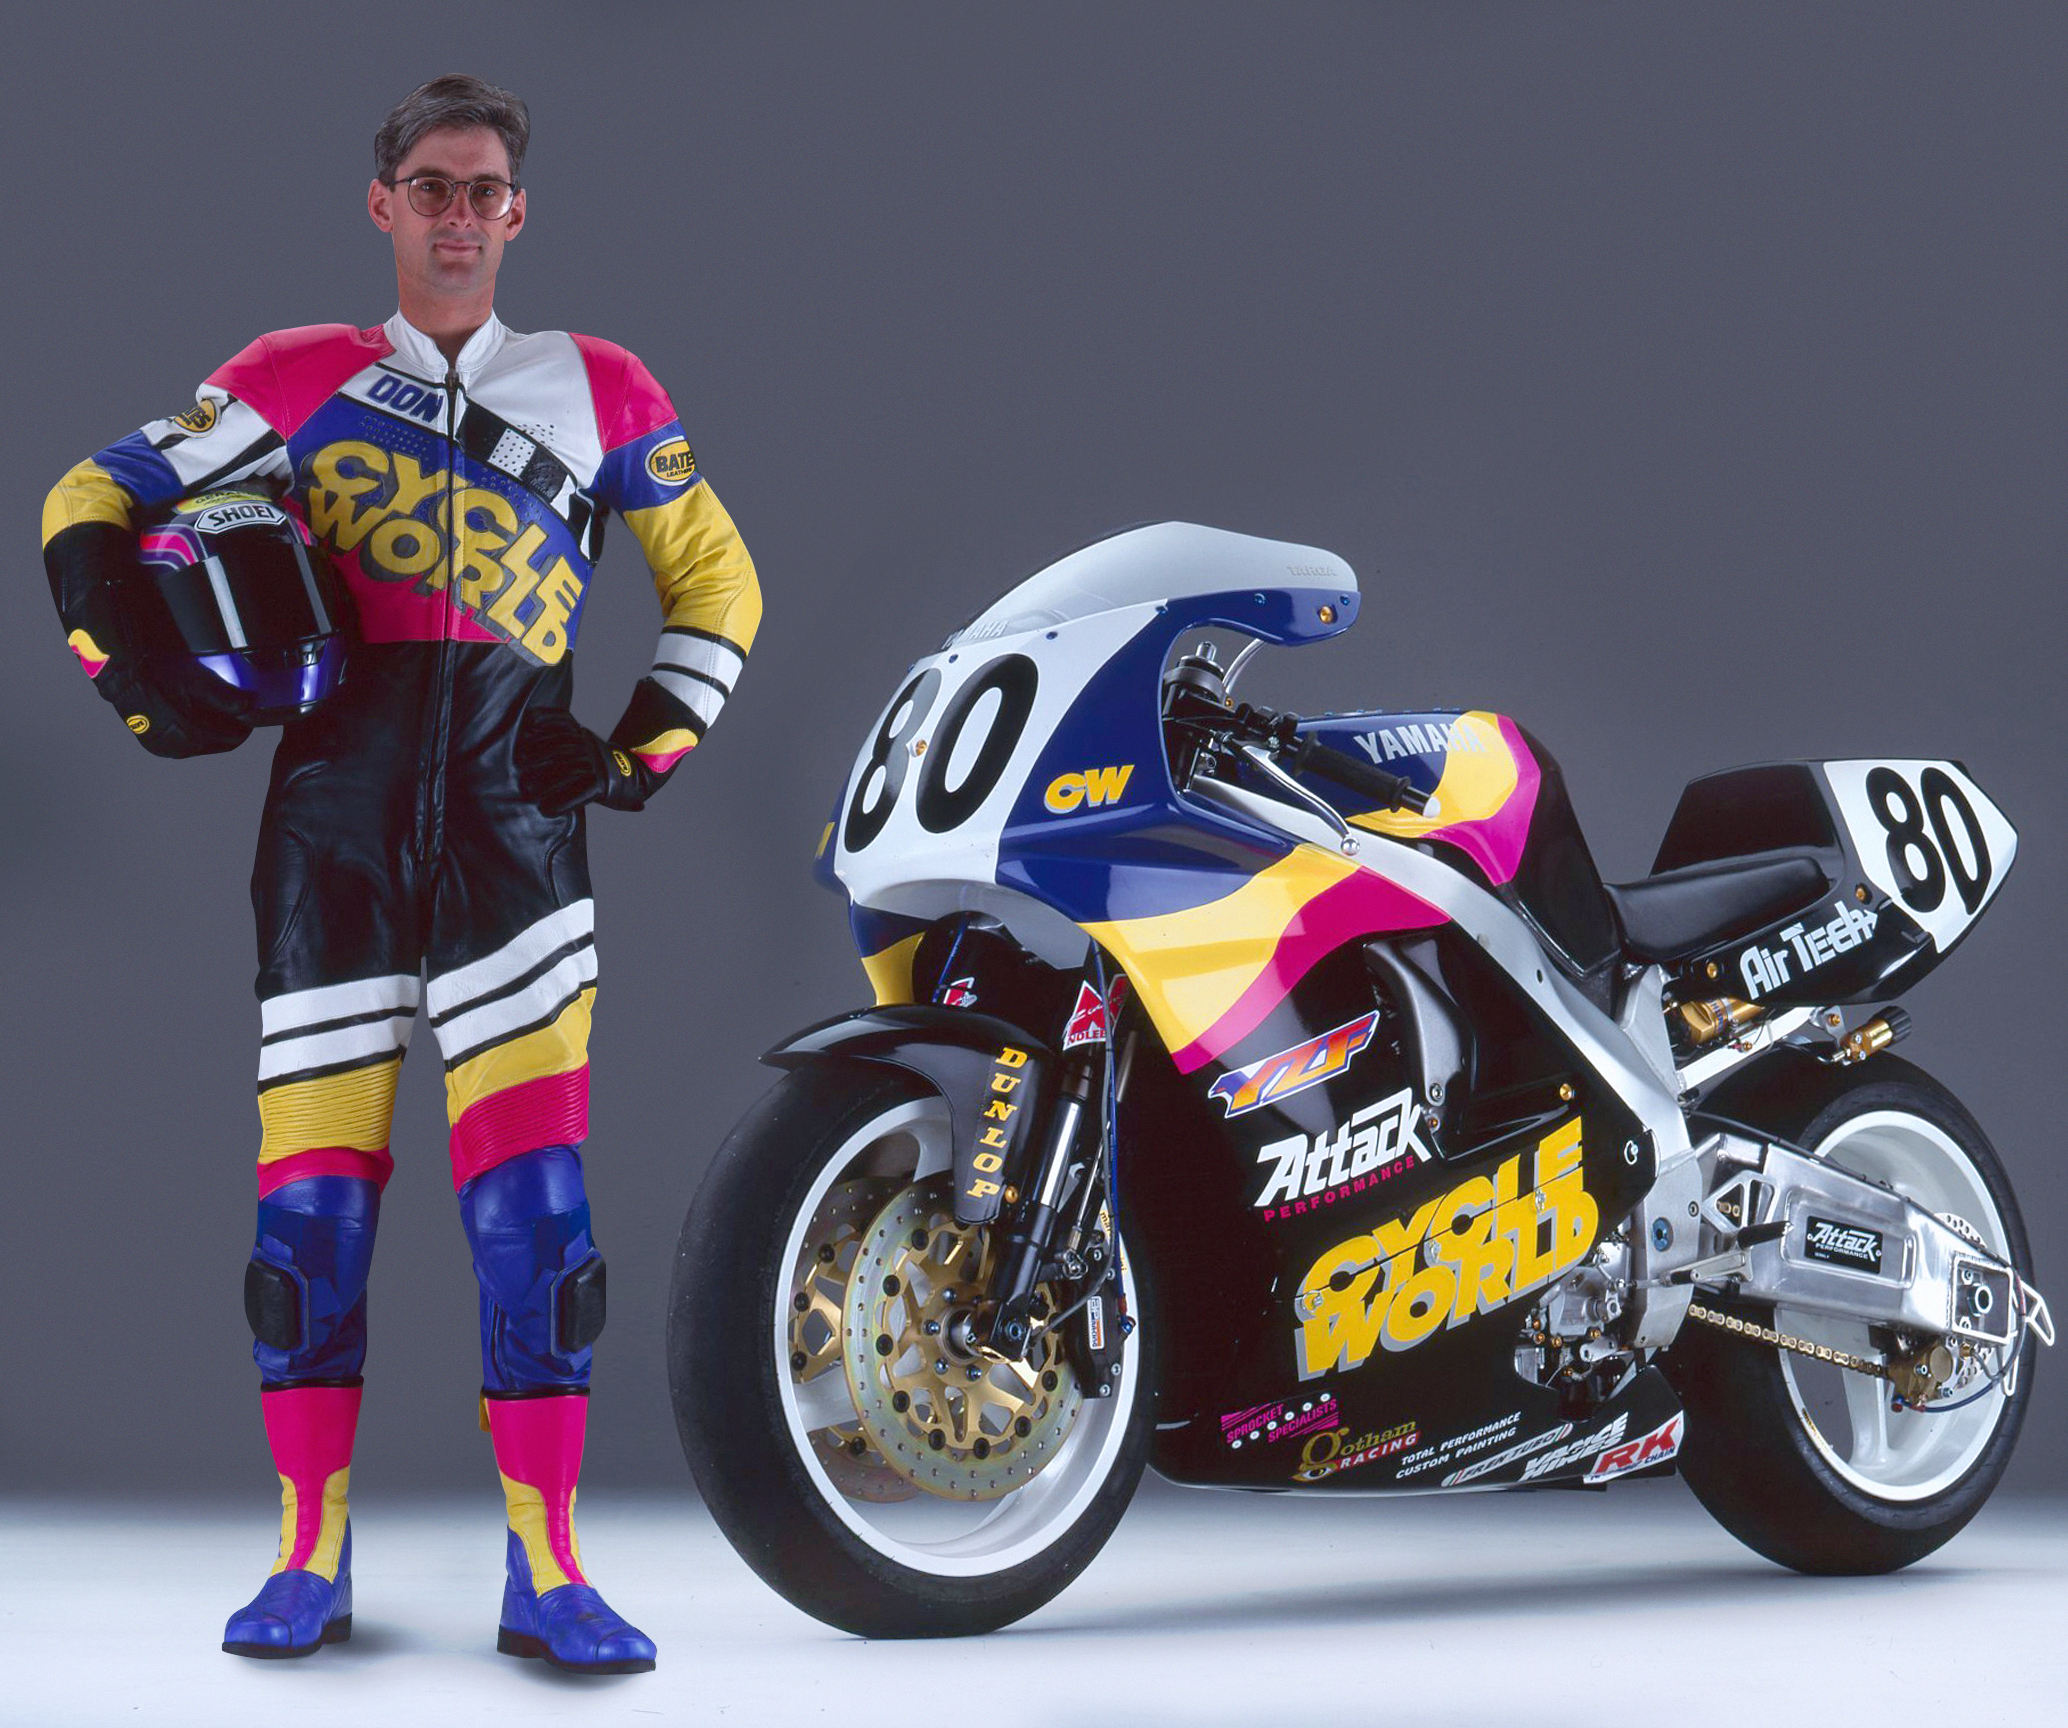 Cycle World's road test editor Don Canet had sick custom leathers to match his YZF750 racebike.